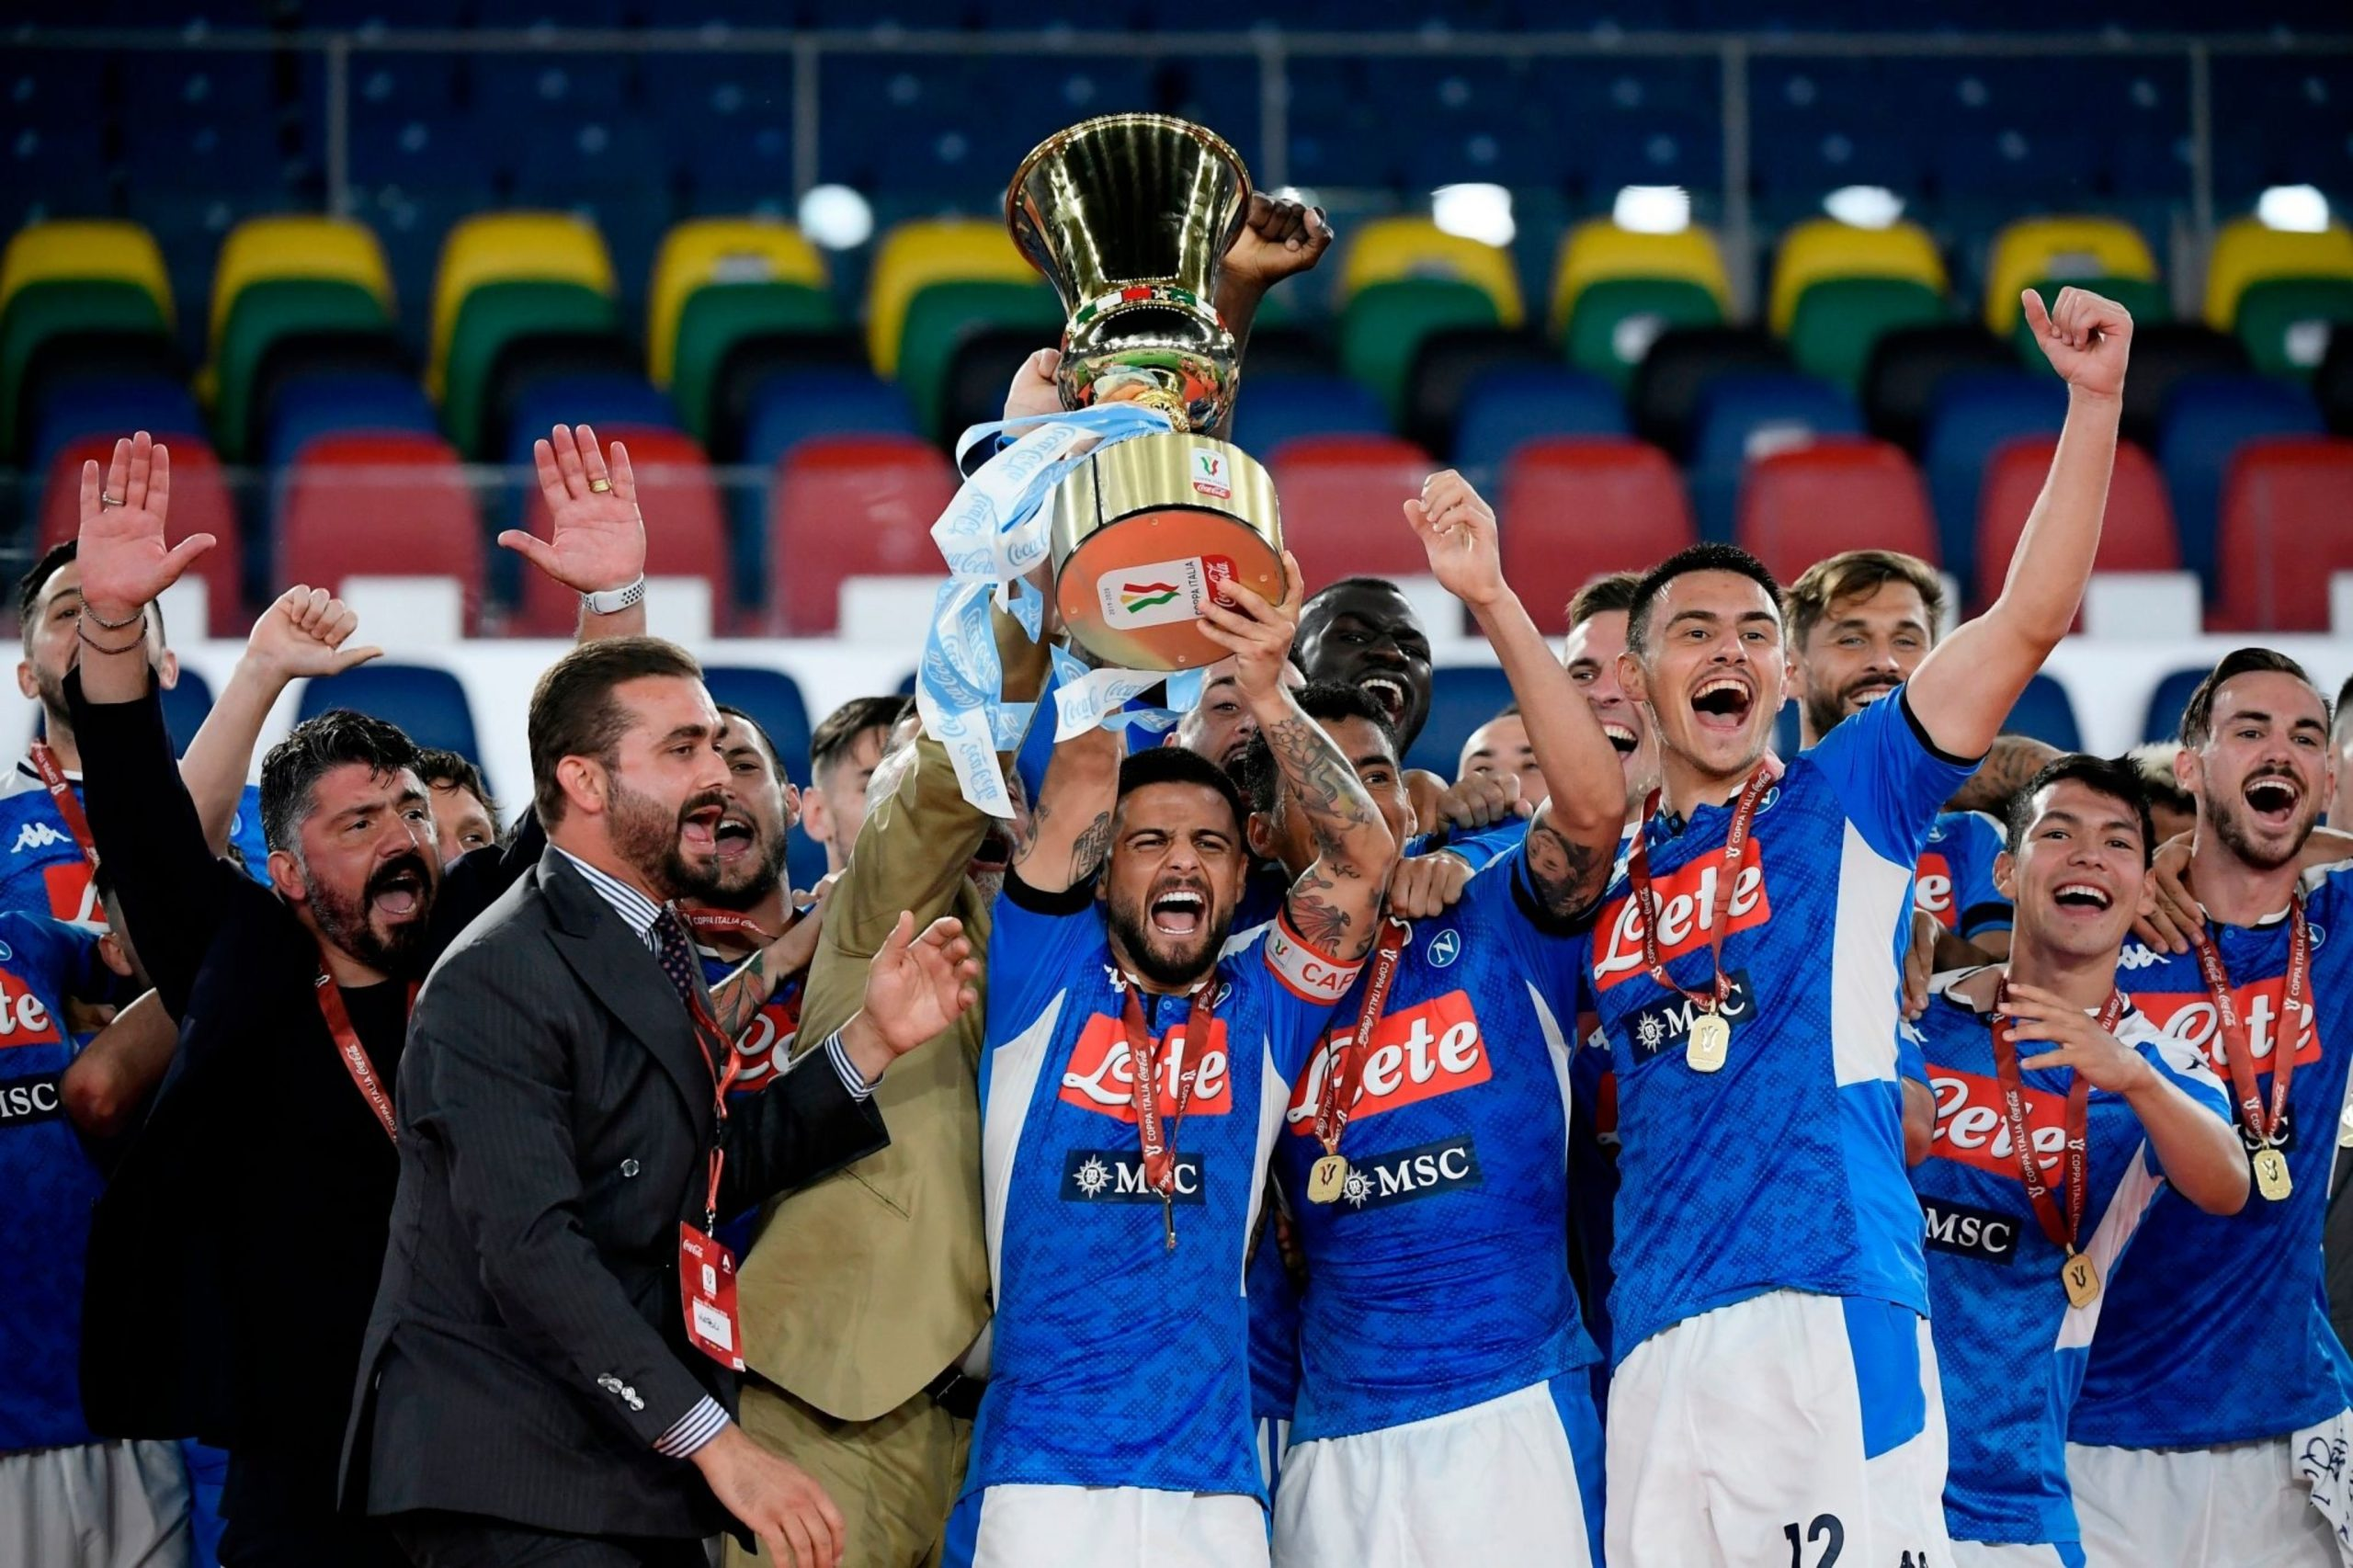 Napoli Beat Juventus On Penalties To Win Coppa Italia